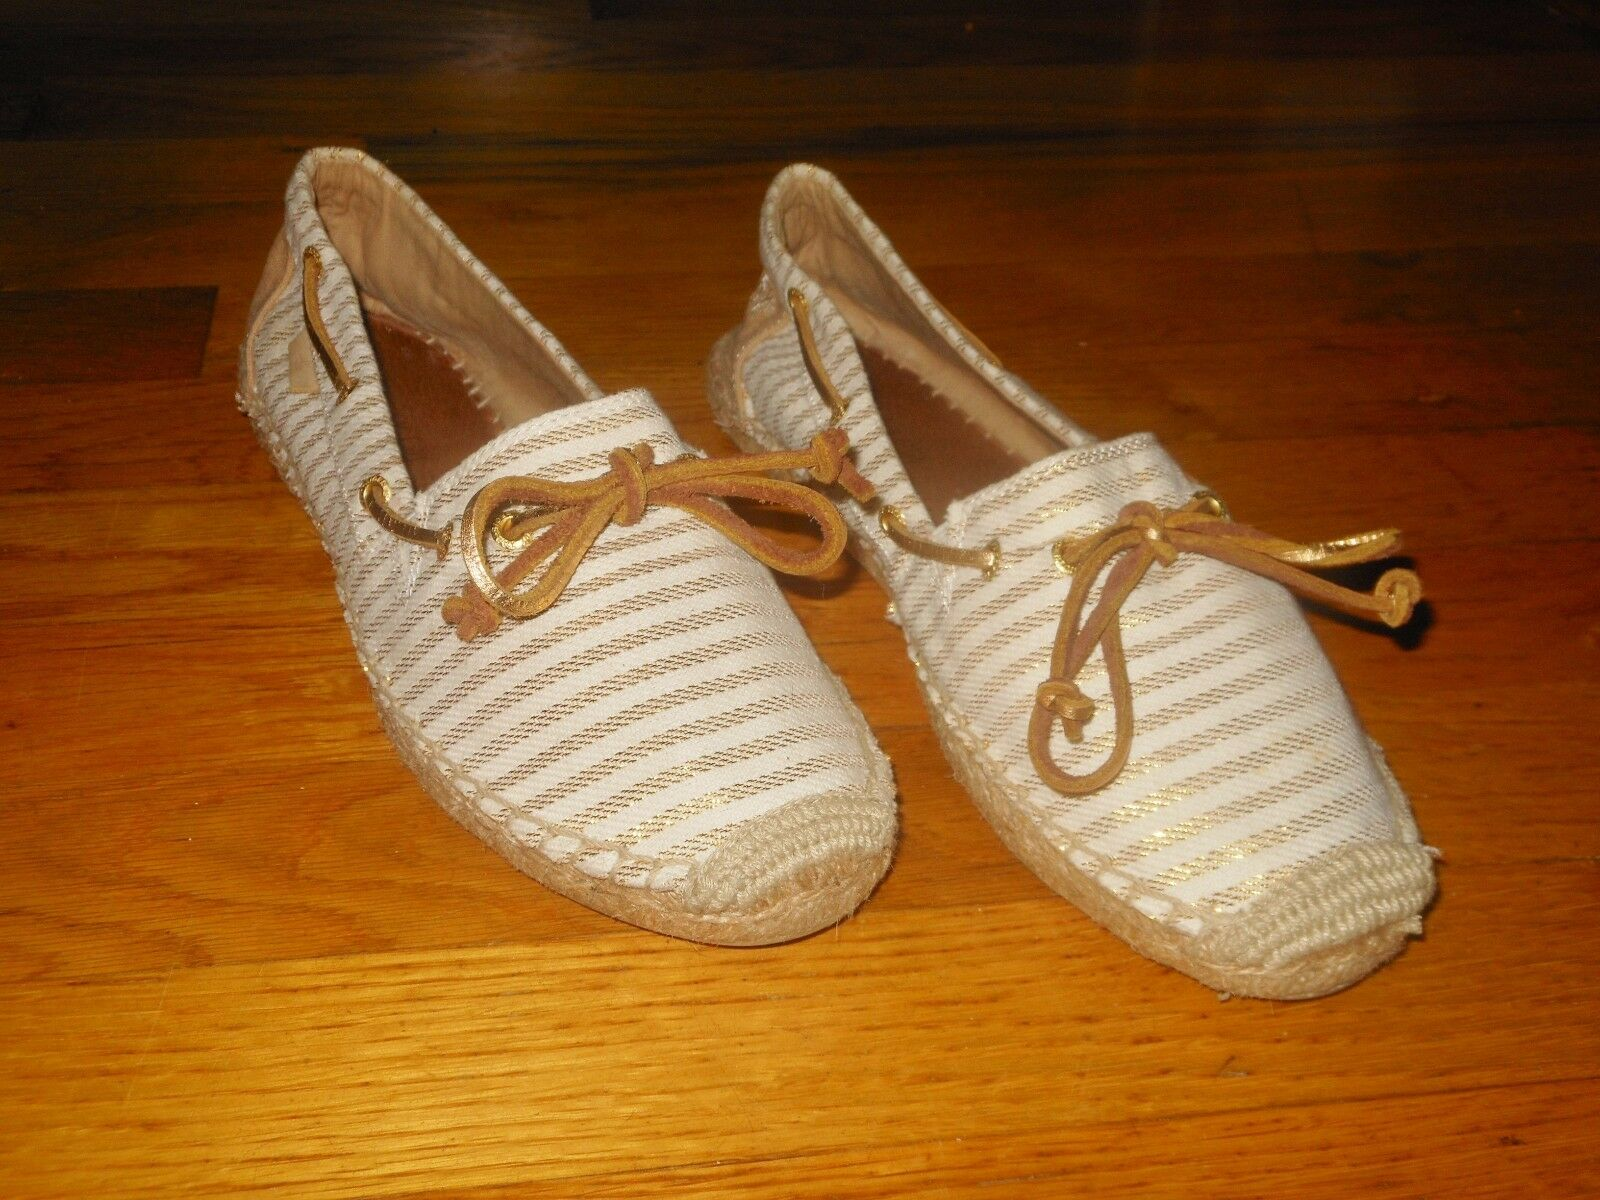 Sperry Top Sider Katama Stripe women's boat shoes - Sz 9.5 M - Excellent cond